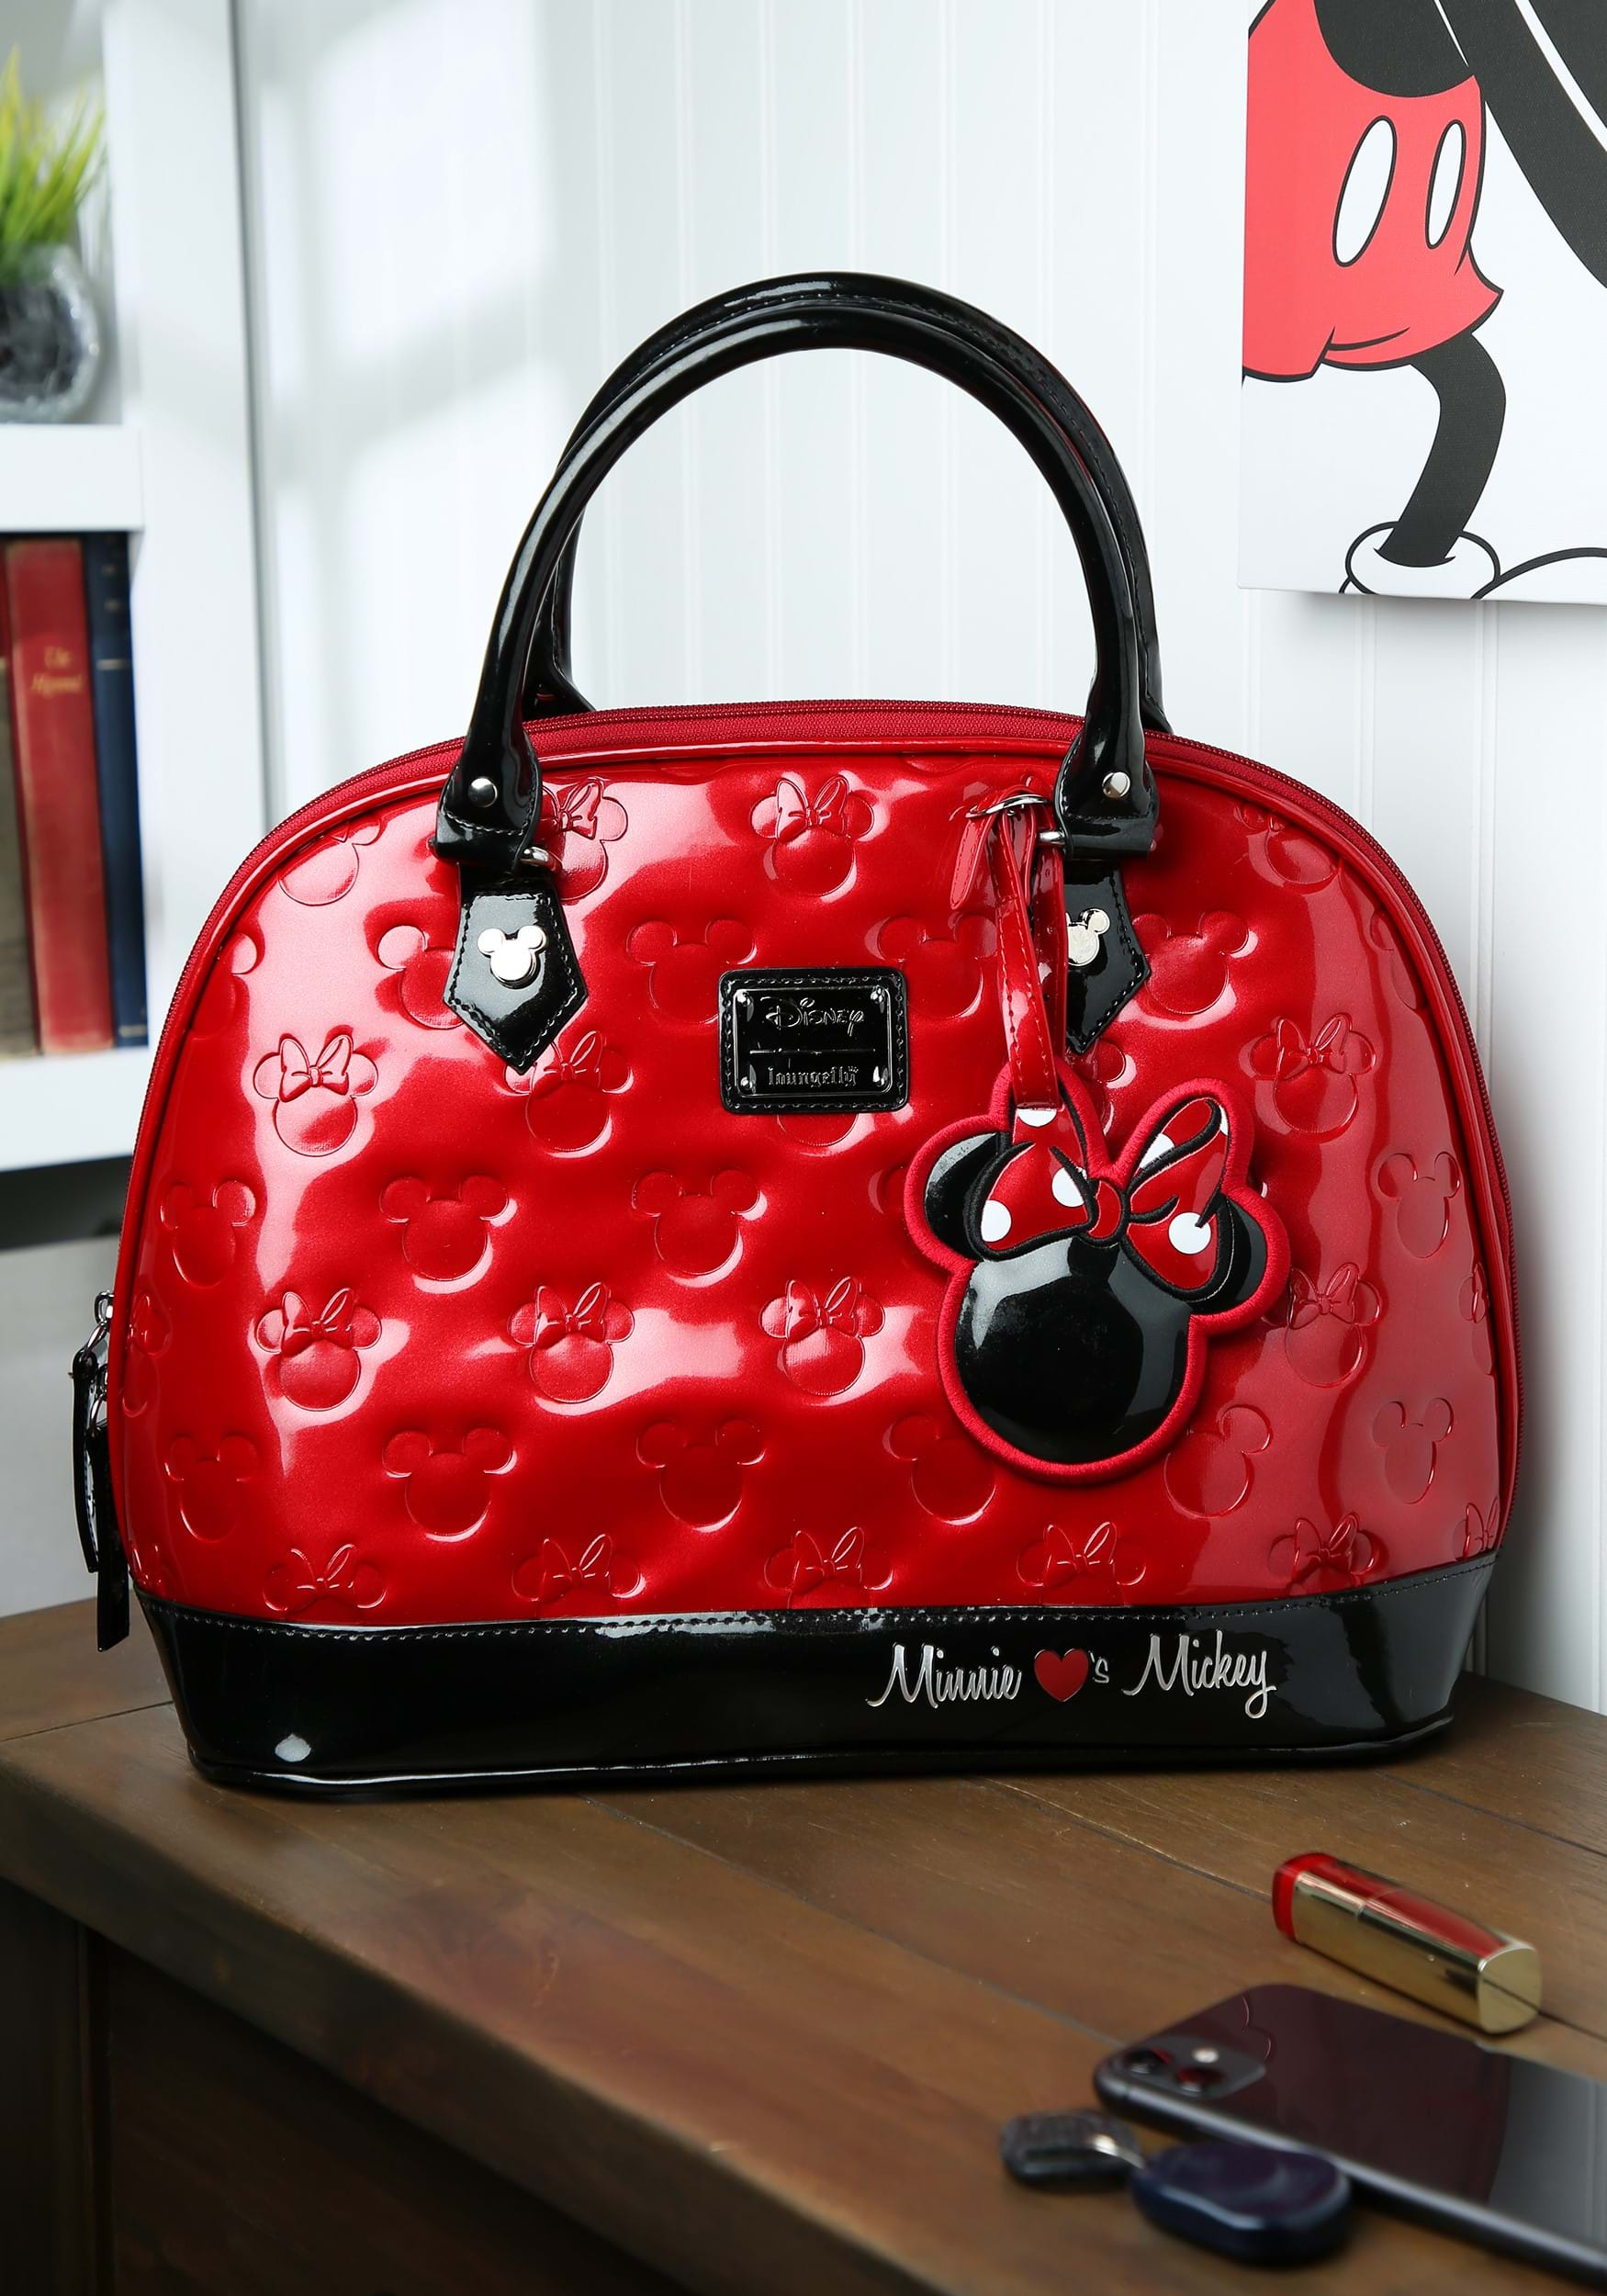 35720bddcb mickey-and-minnie-red-and-black-patent-embossed-bag.jpg